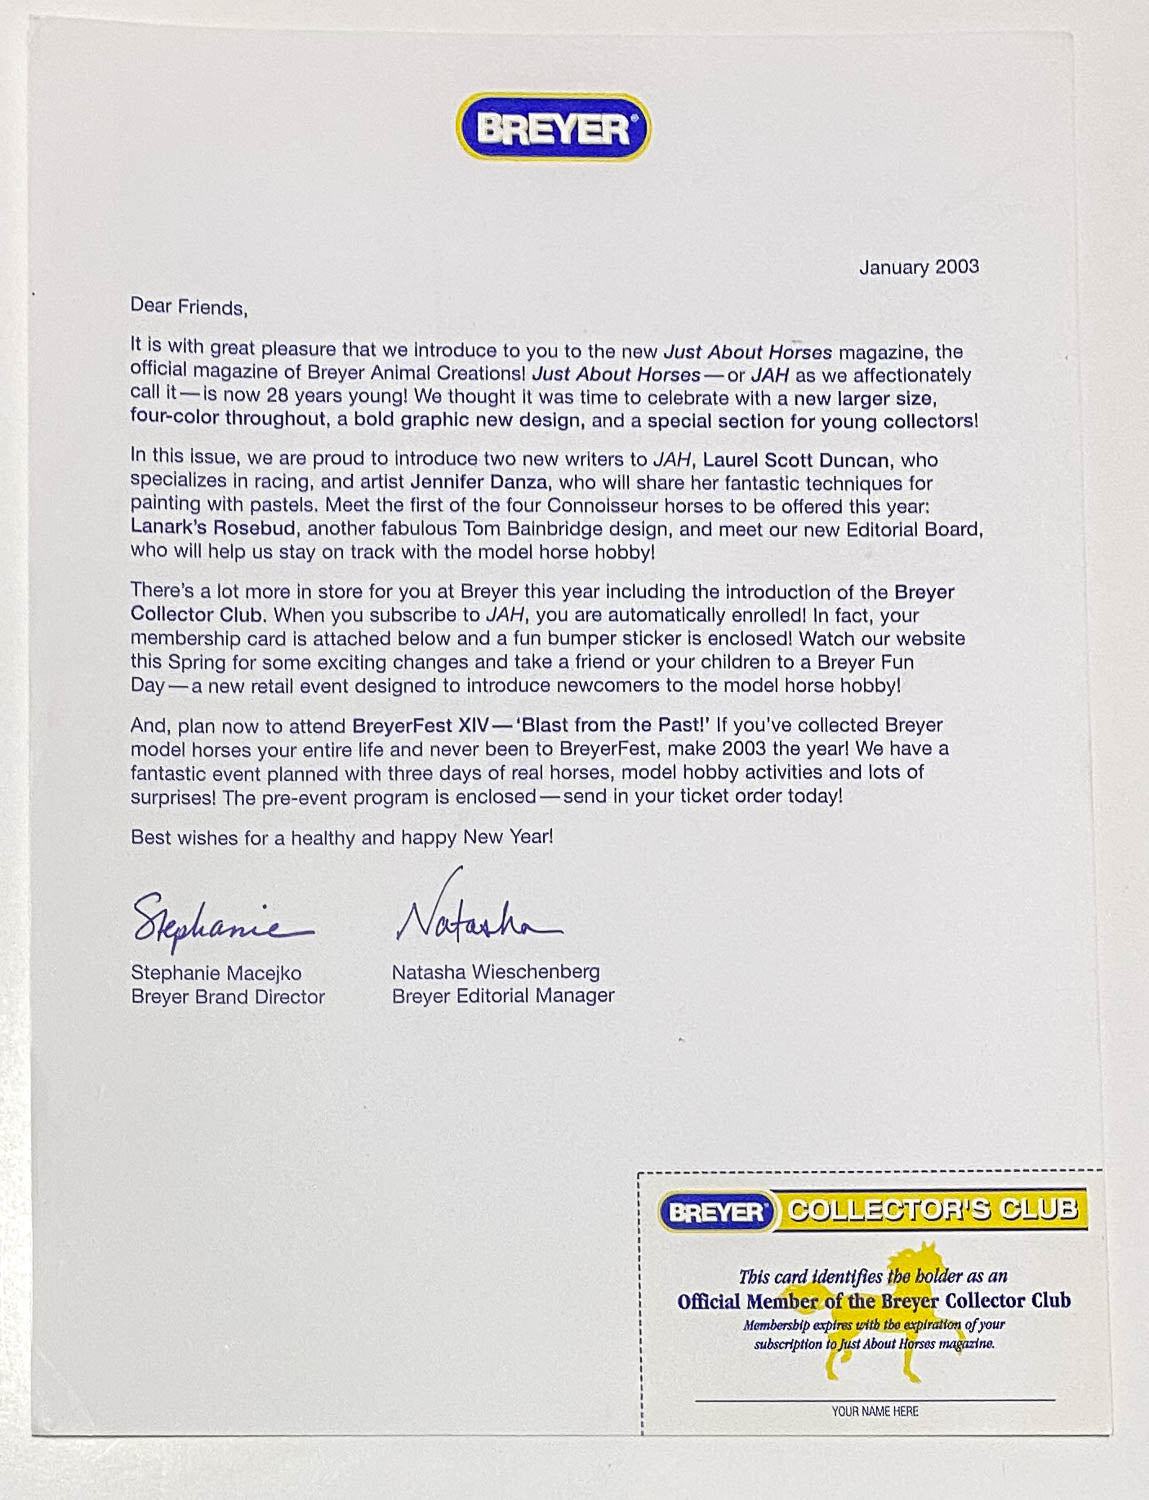 Collectors Club Card and Welcome Letter, 2003 (sale for charity)